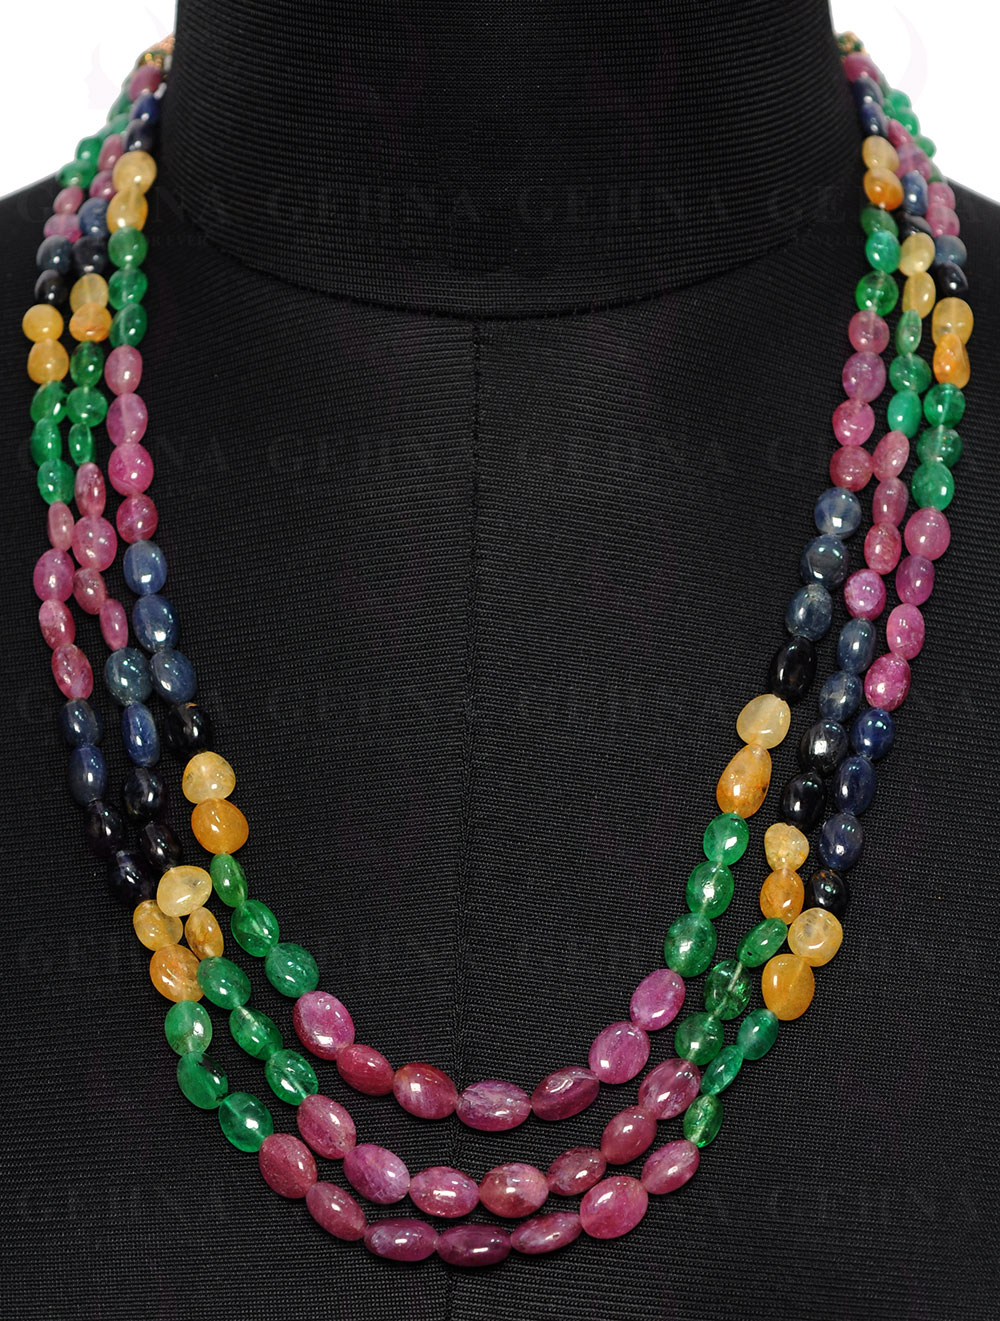 Ruby And Sapphire Gemstone Oval Bead Necklace NP1254 3 Rows Emerald